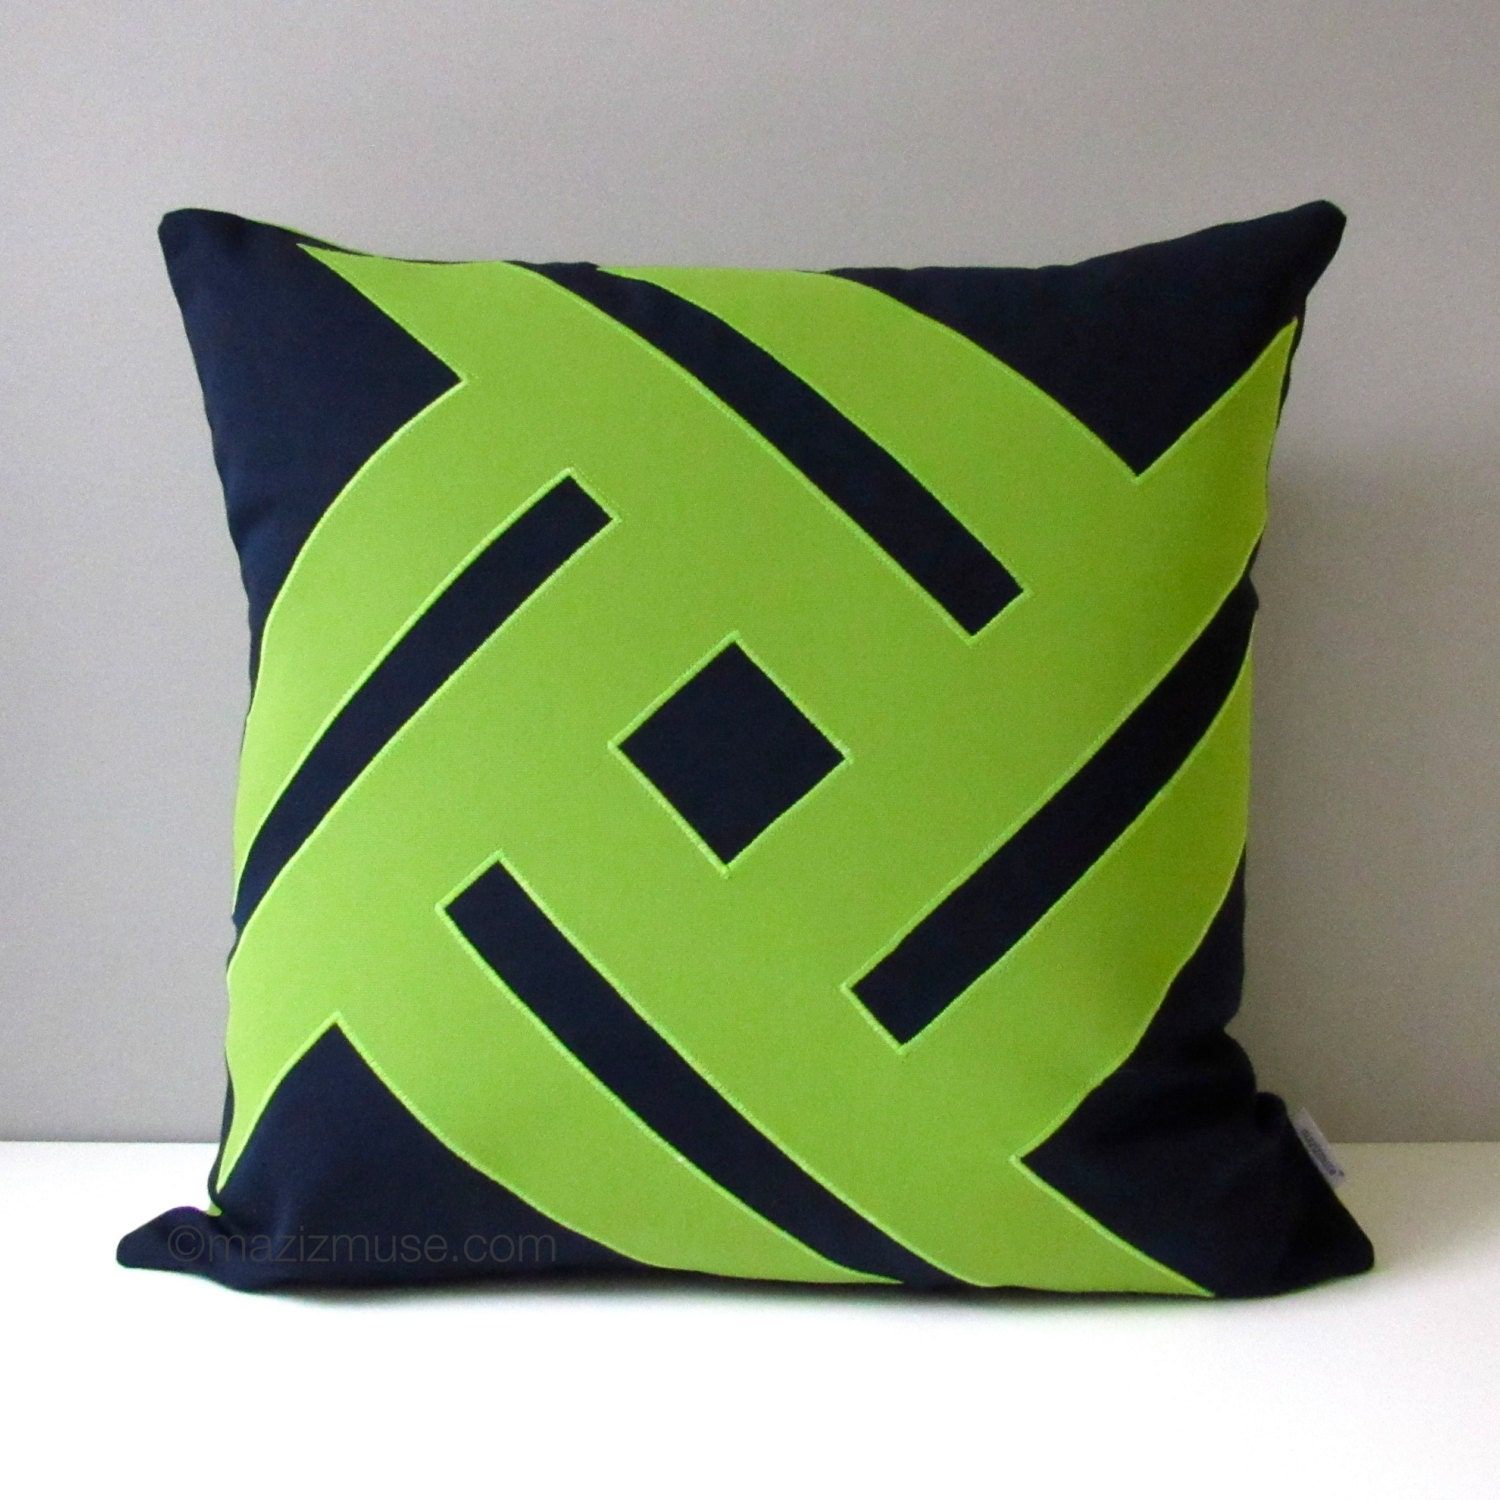 Navy Blue Amp Lime Green Outdoor Pillow Cover Modern Geometric